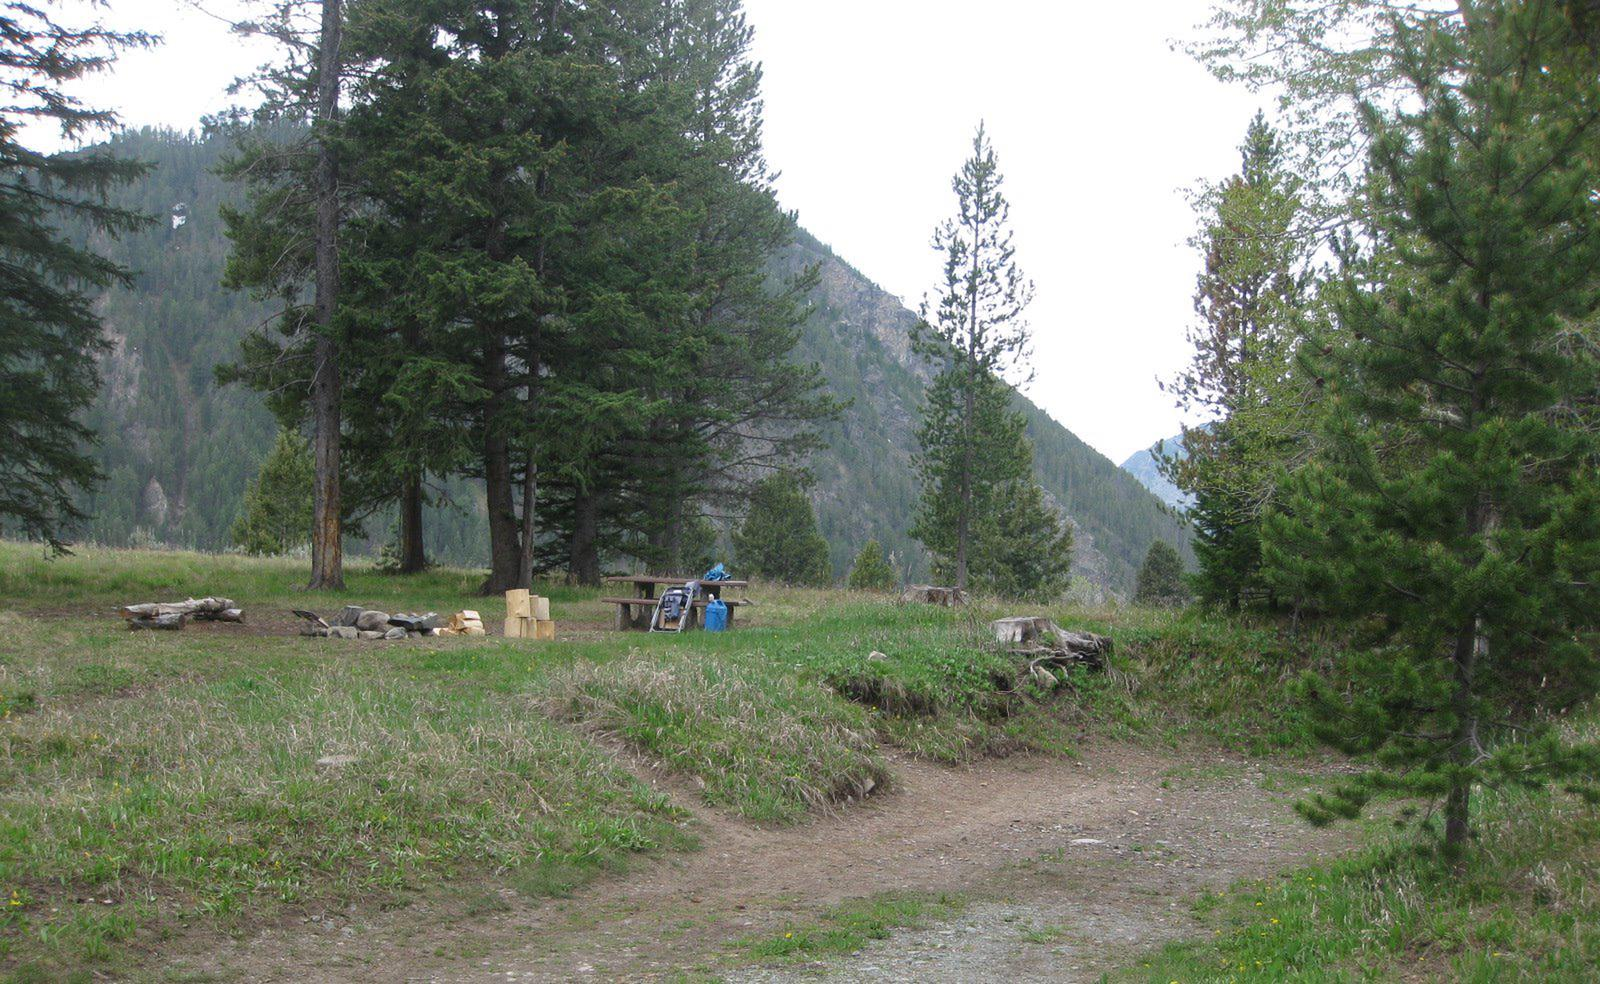 Site C20, campsite surrounded by pine trees, picnic table & fire ringSite C20